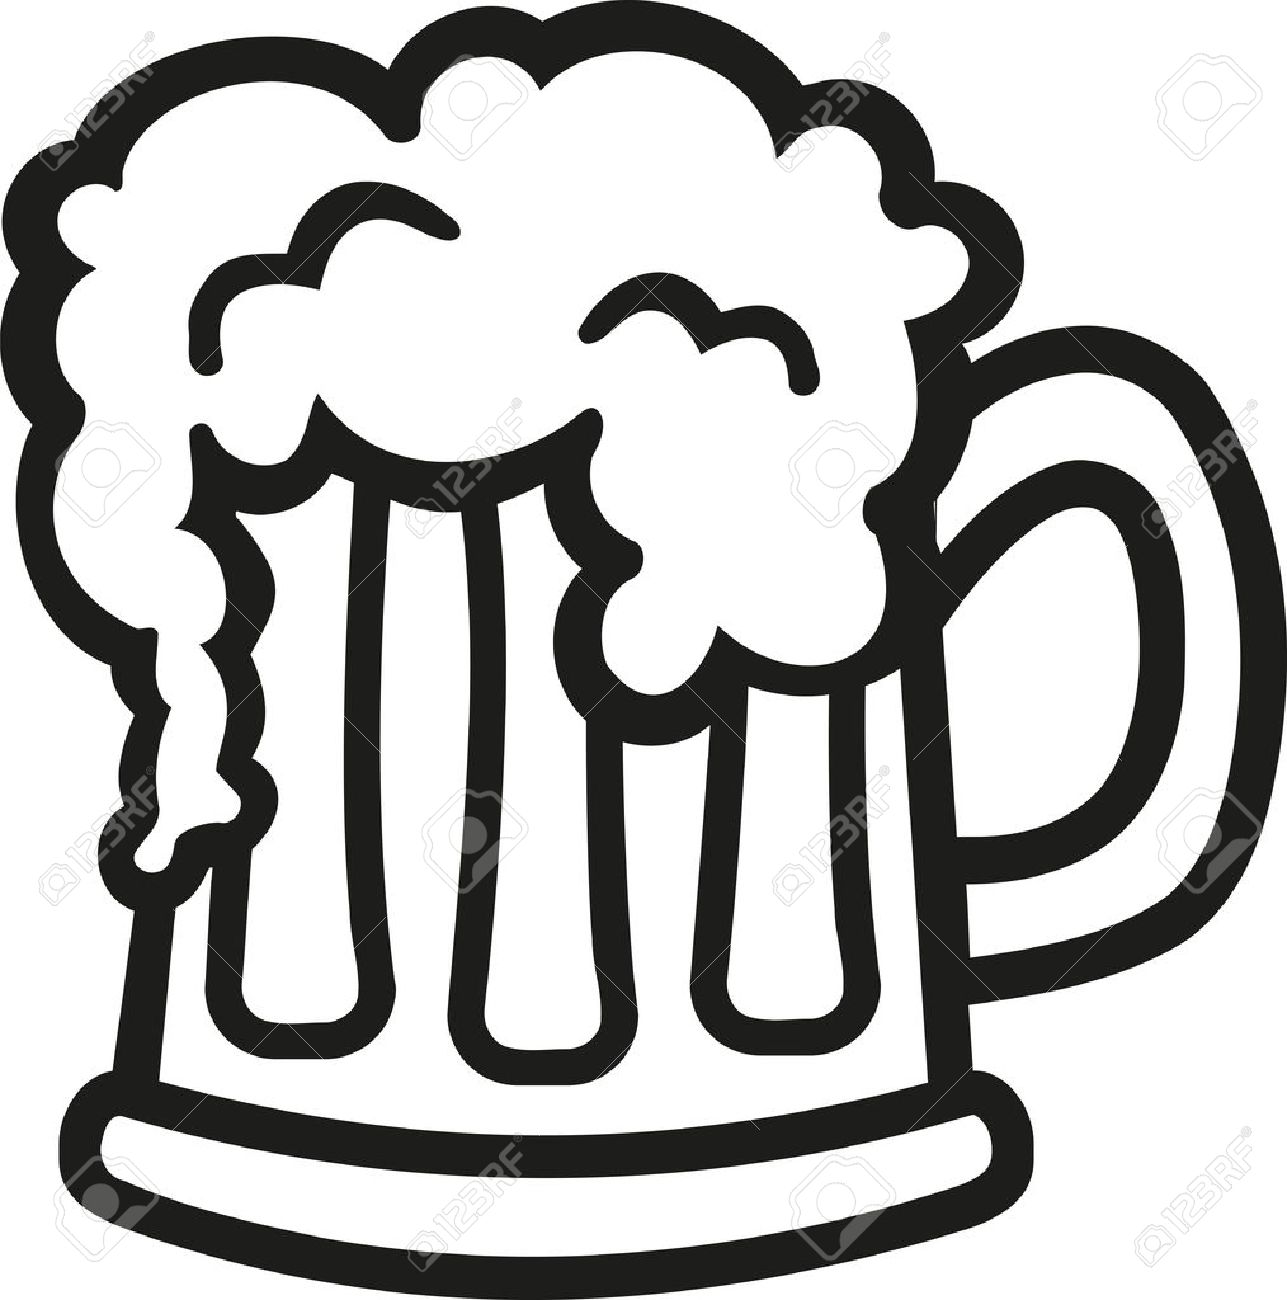 Beer clipart black and white freeuse Beer clipart black and white 6 » Clipart Station freeuse